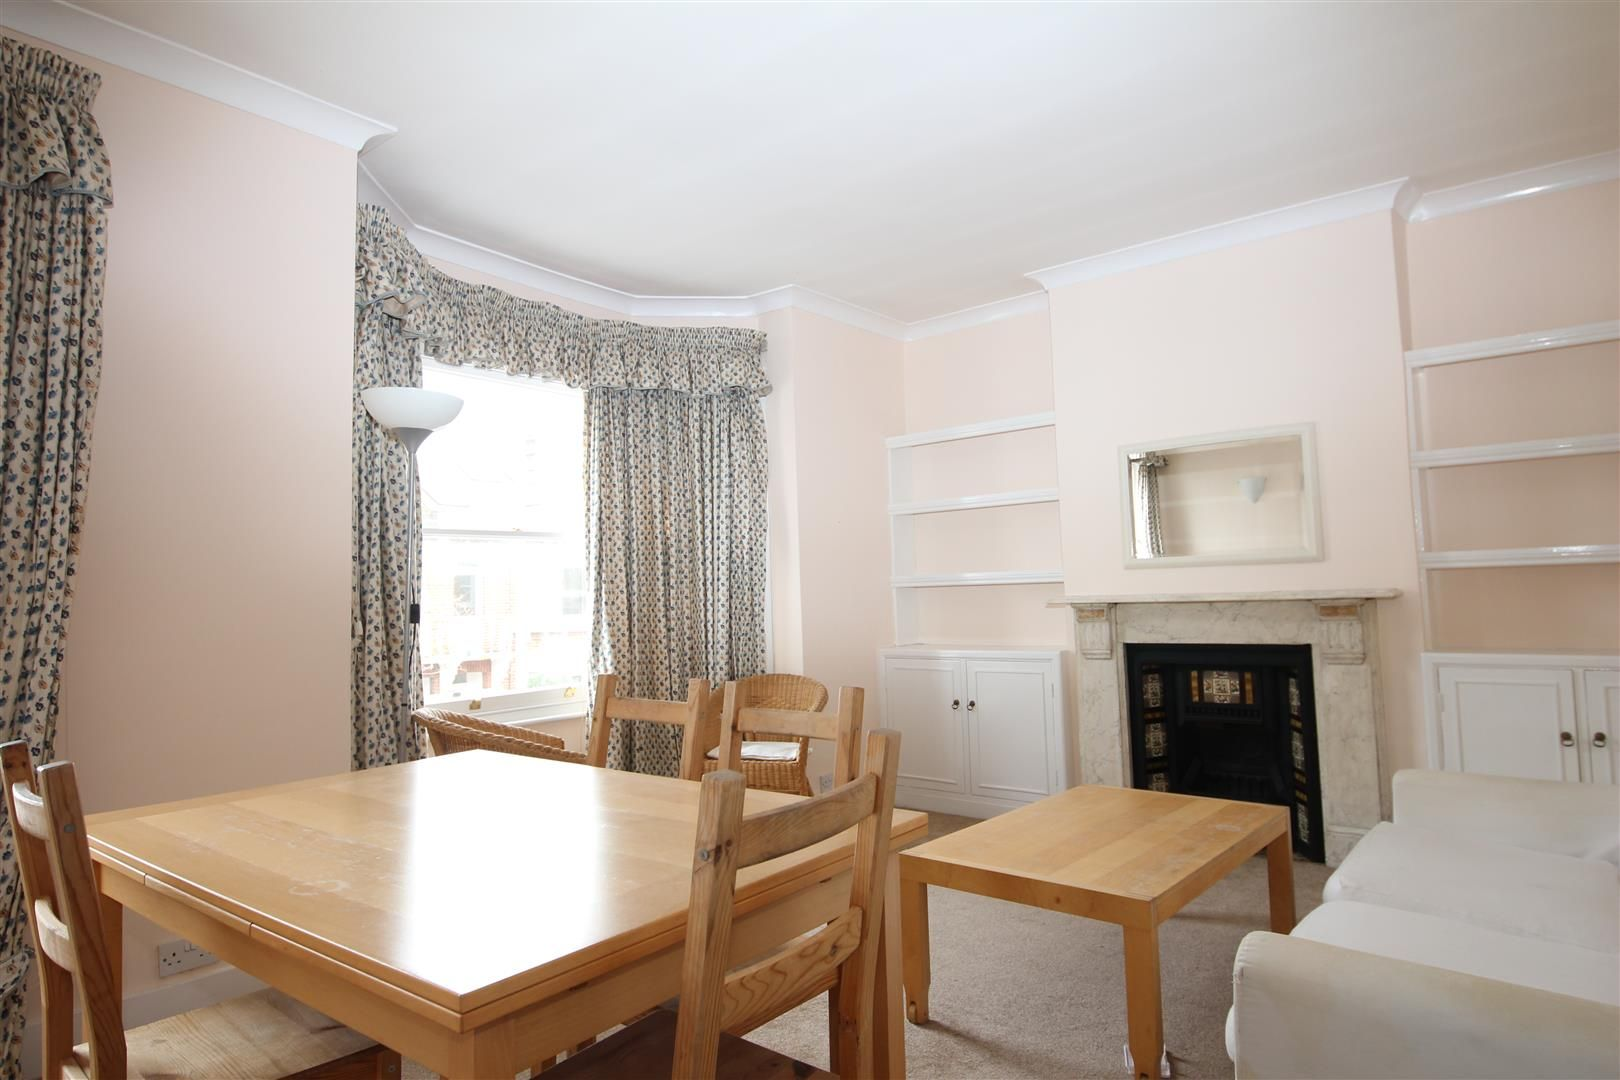 Property photo 1 of 4. Reception Room